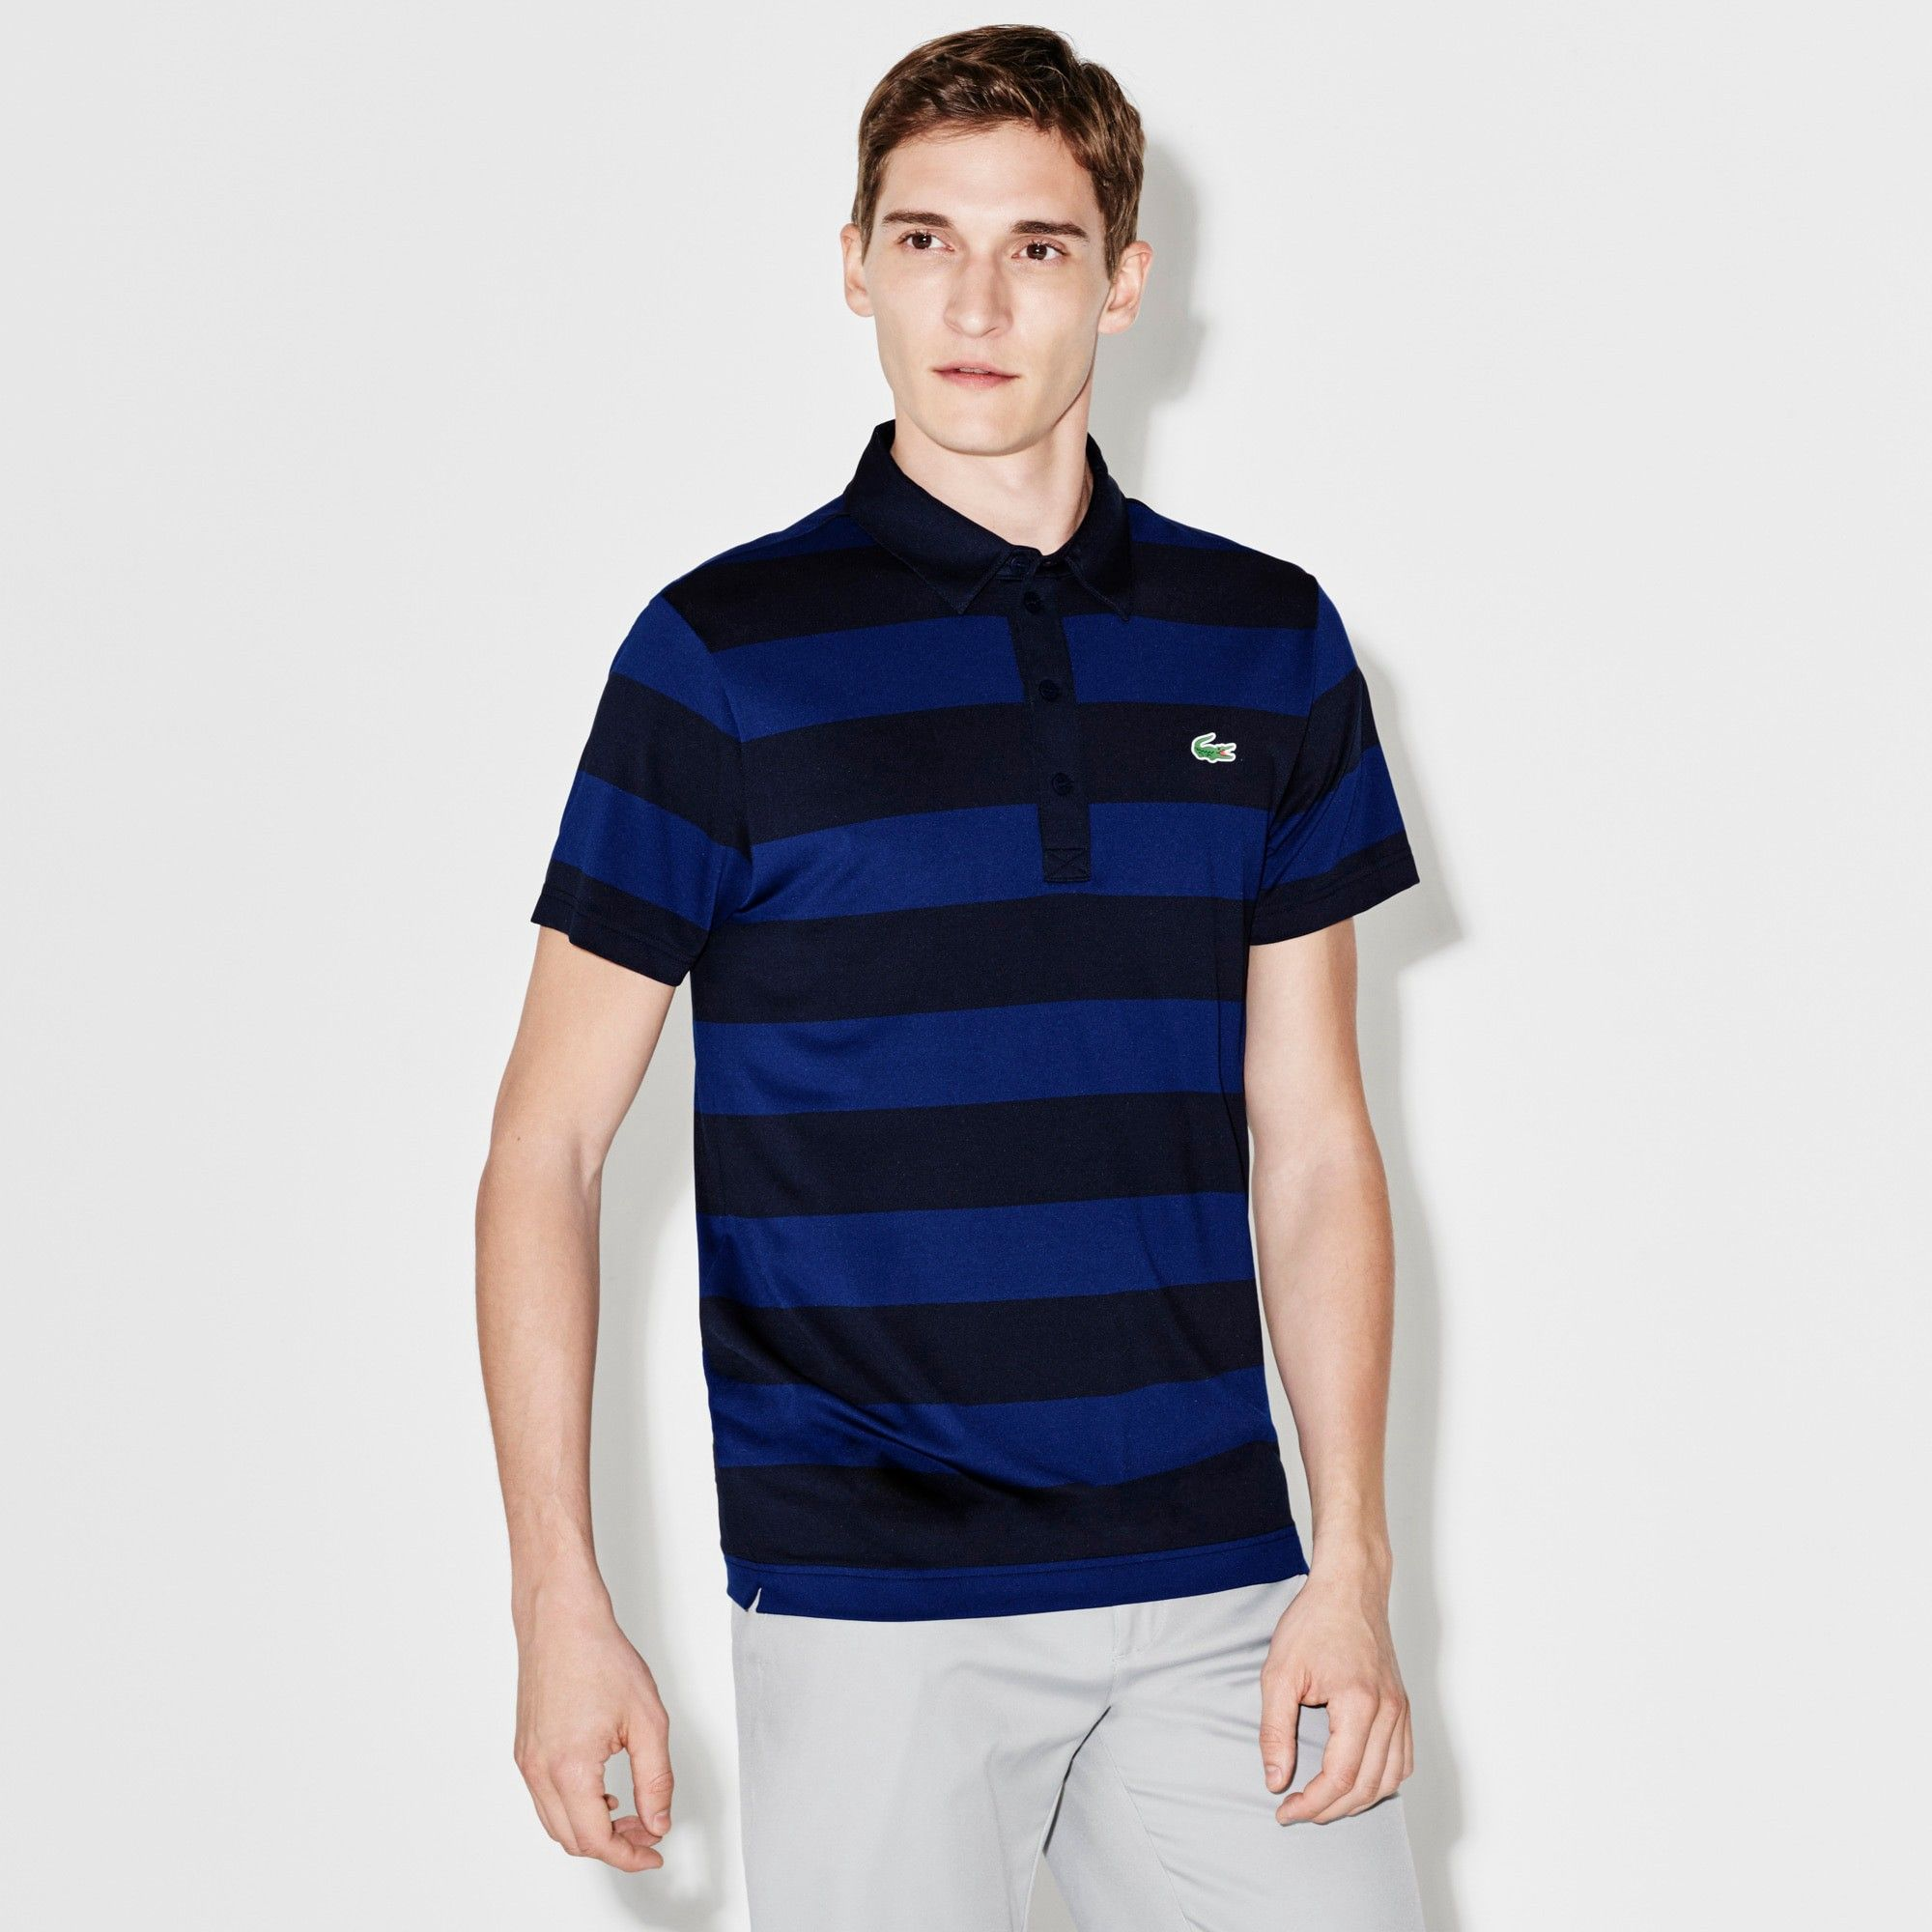 Lacoste Mens S//S Striped Light Jersey Pima Cotton Polo Regular Fit